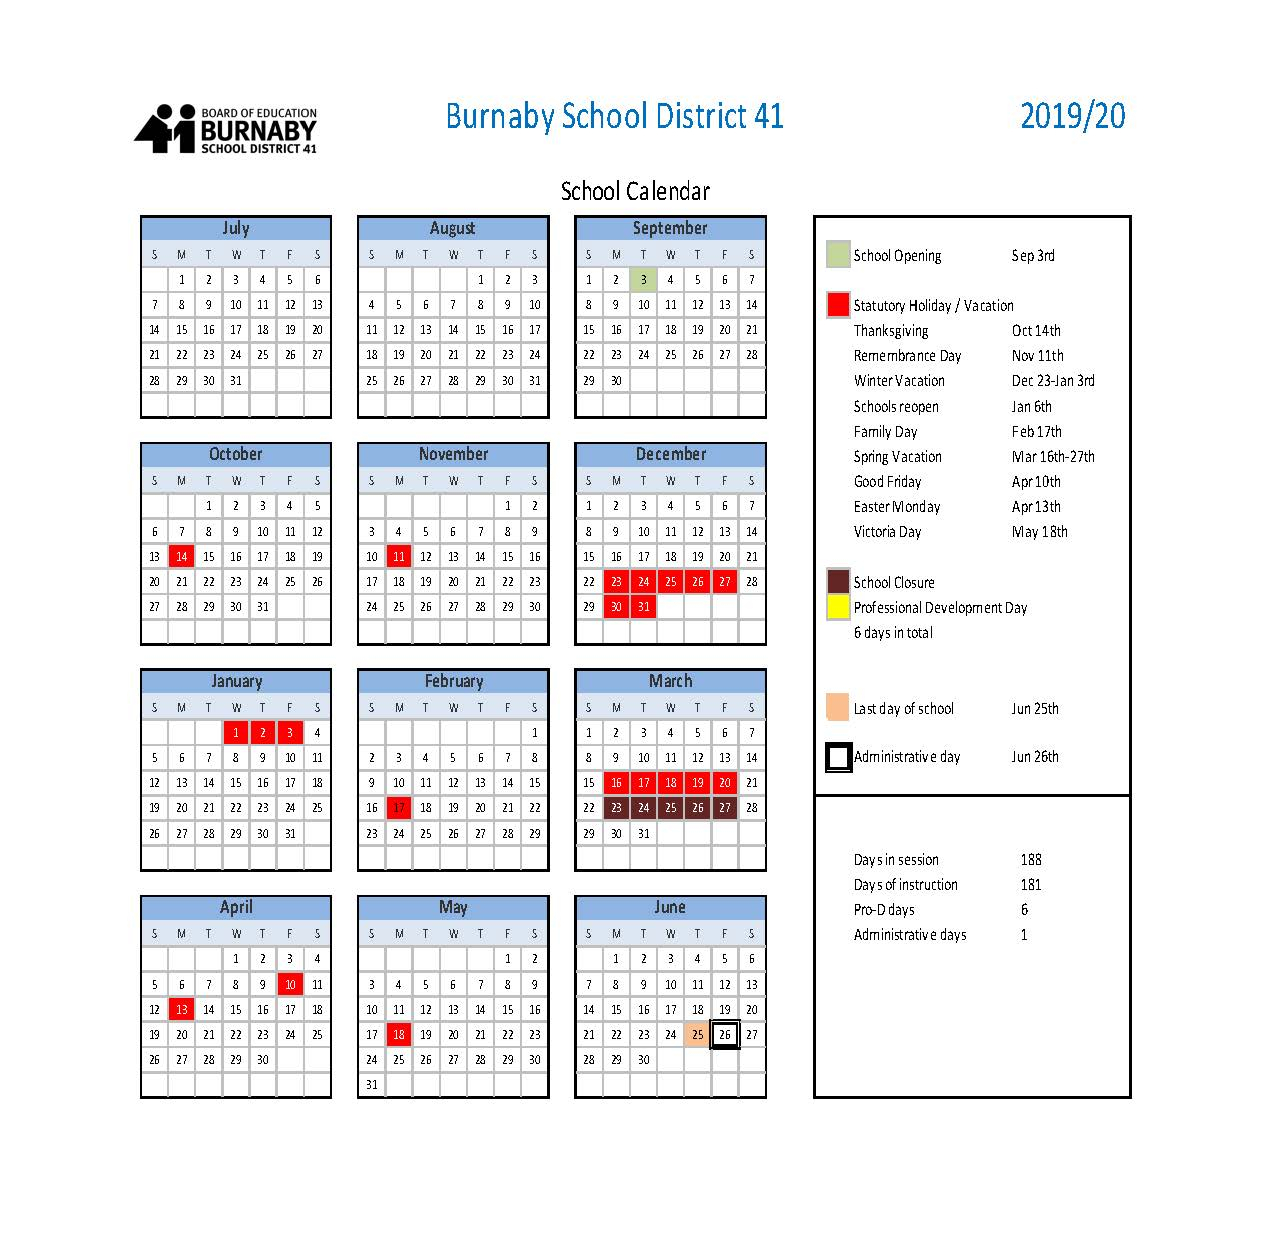 School Calendar 1718 To 1920 Revised March 2018_Page_3 within Mulgrave School Calendar